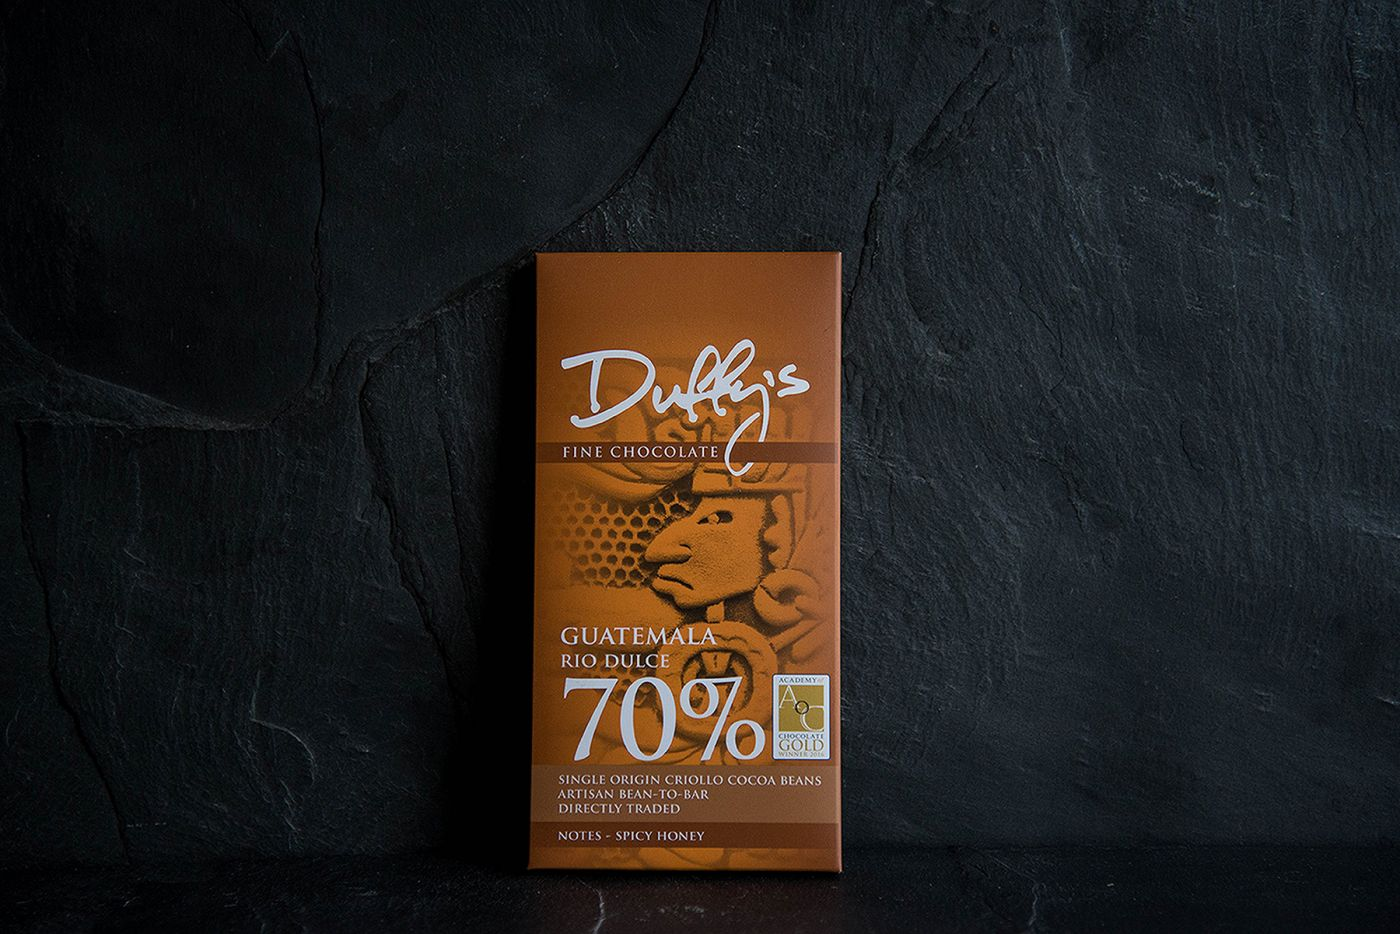 Guatemala Rio Dulce 70% Dark Chocolate Bar